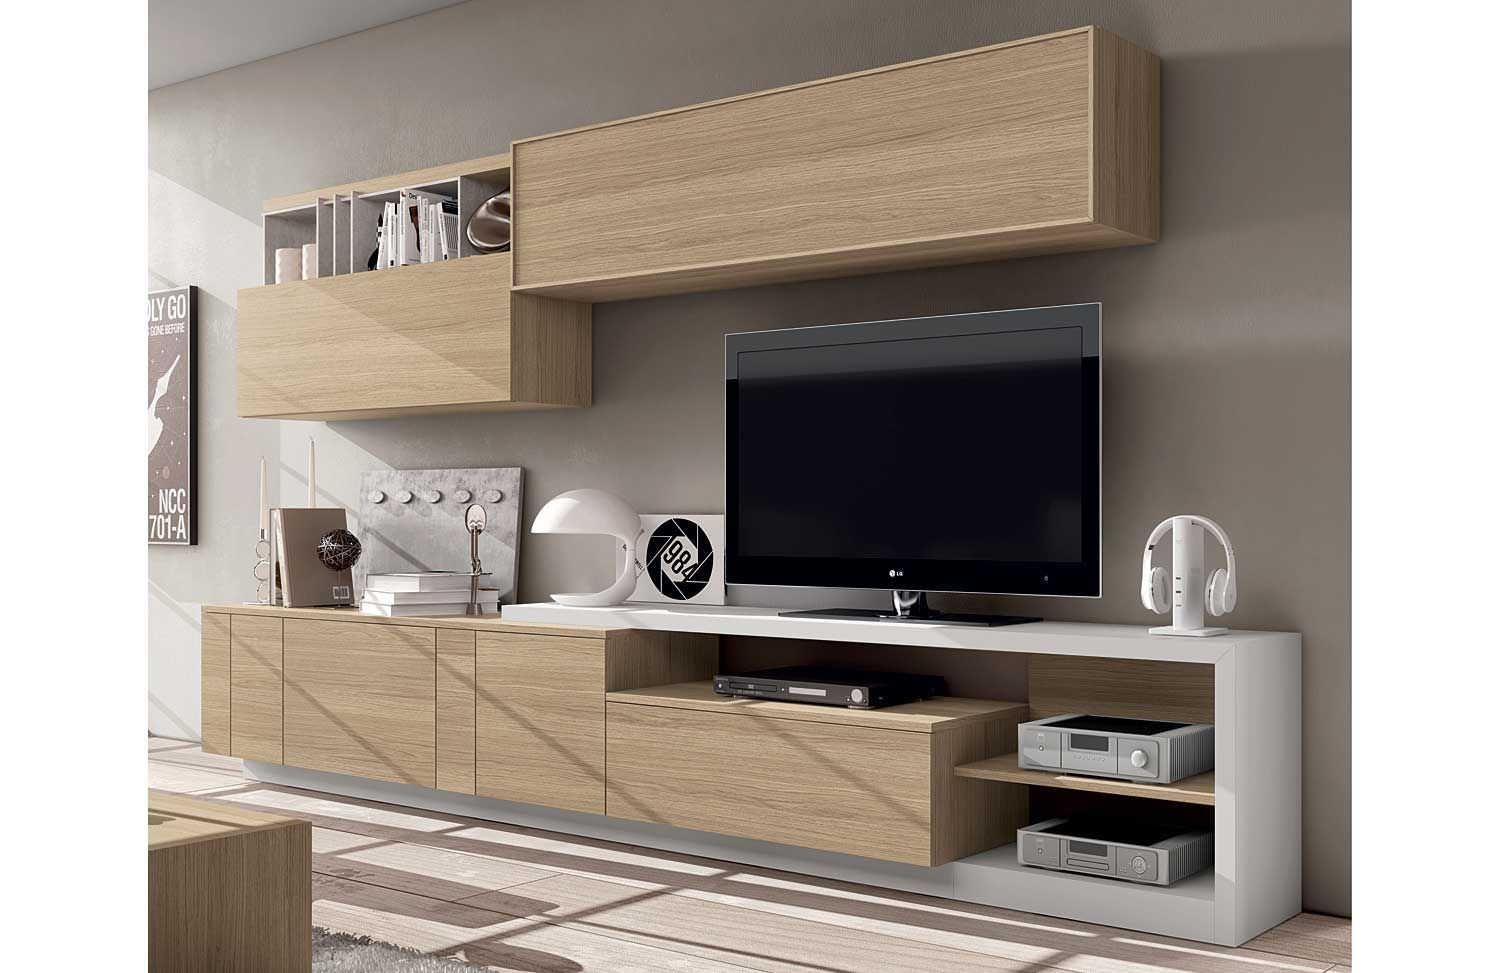 Dm Muebles Salon Escandinavo Nordik 4 Material Dm Densidad Media Dm